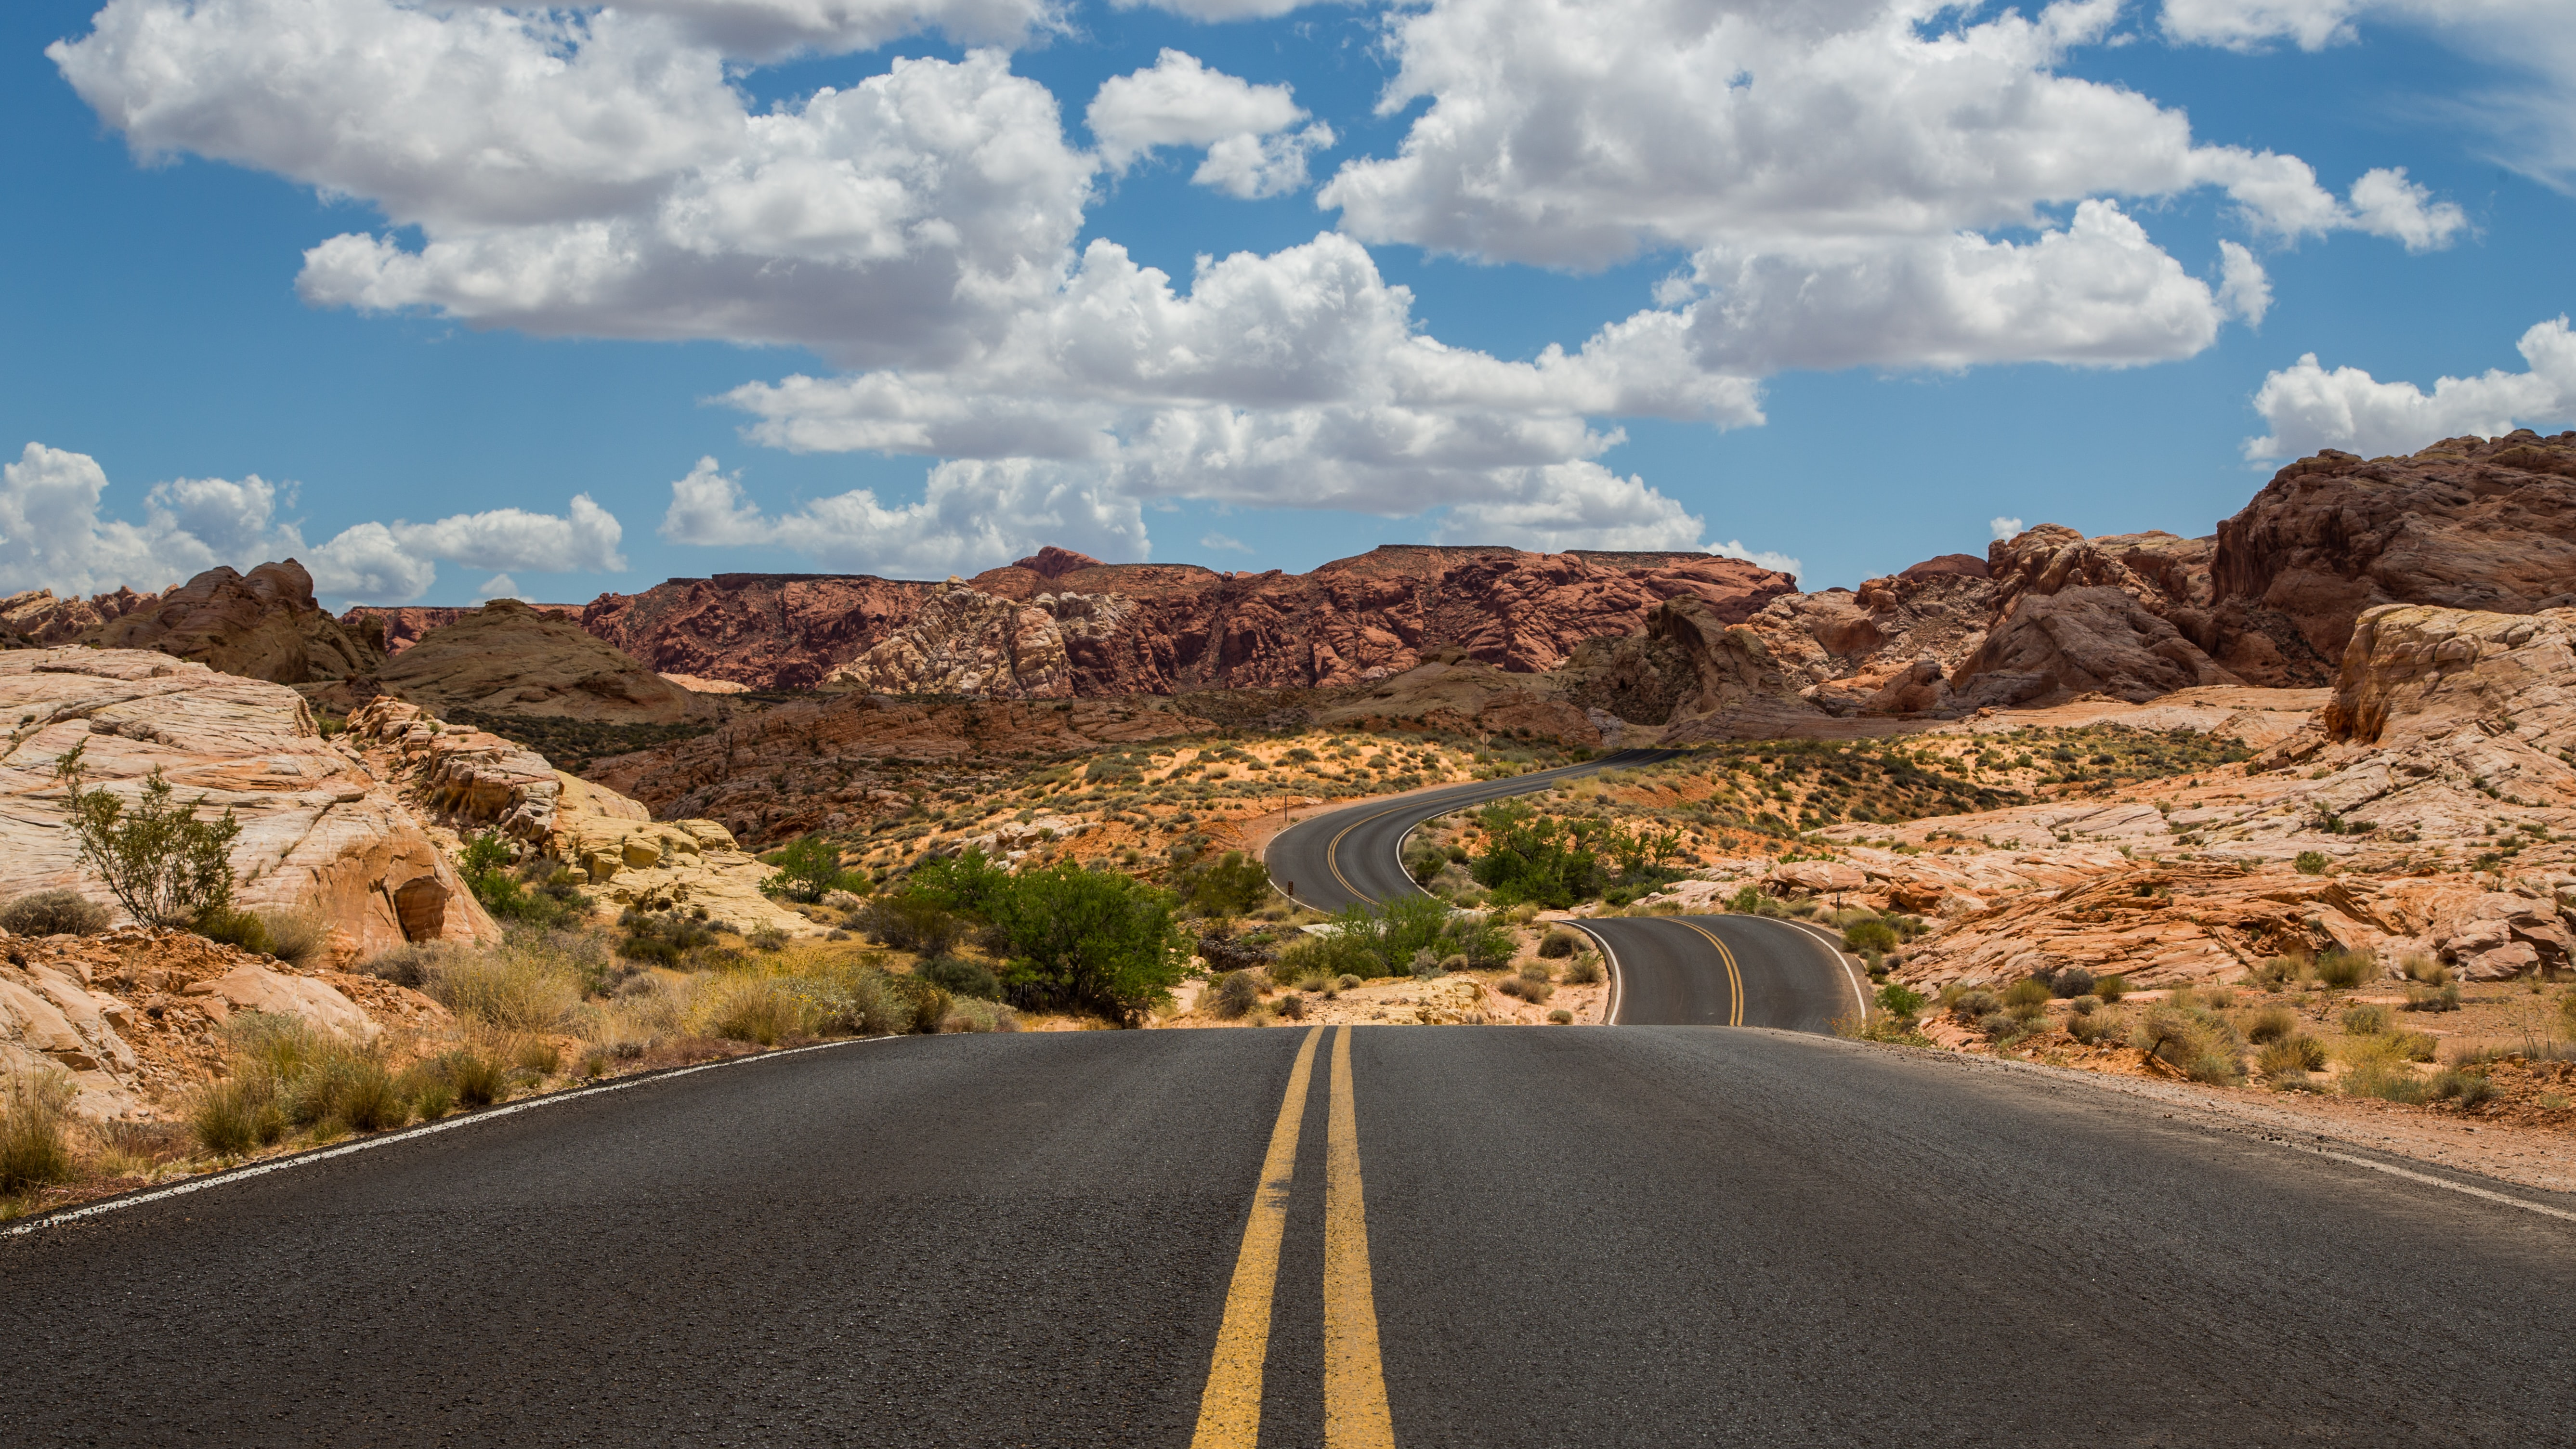 Image of an open road with mountains in the background.